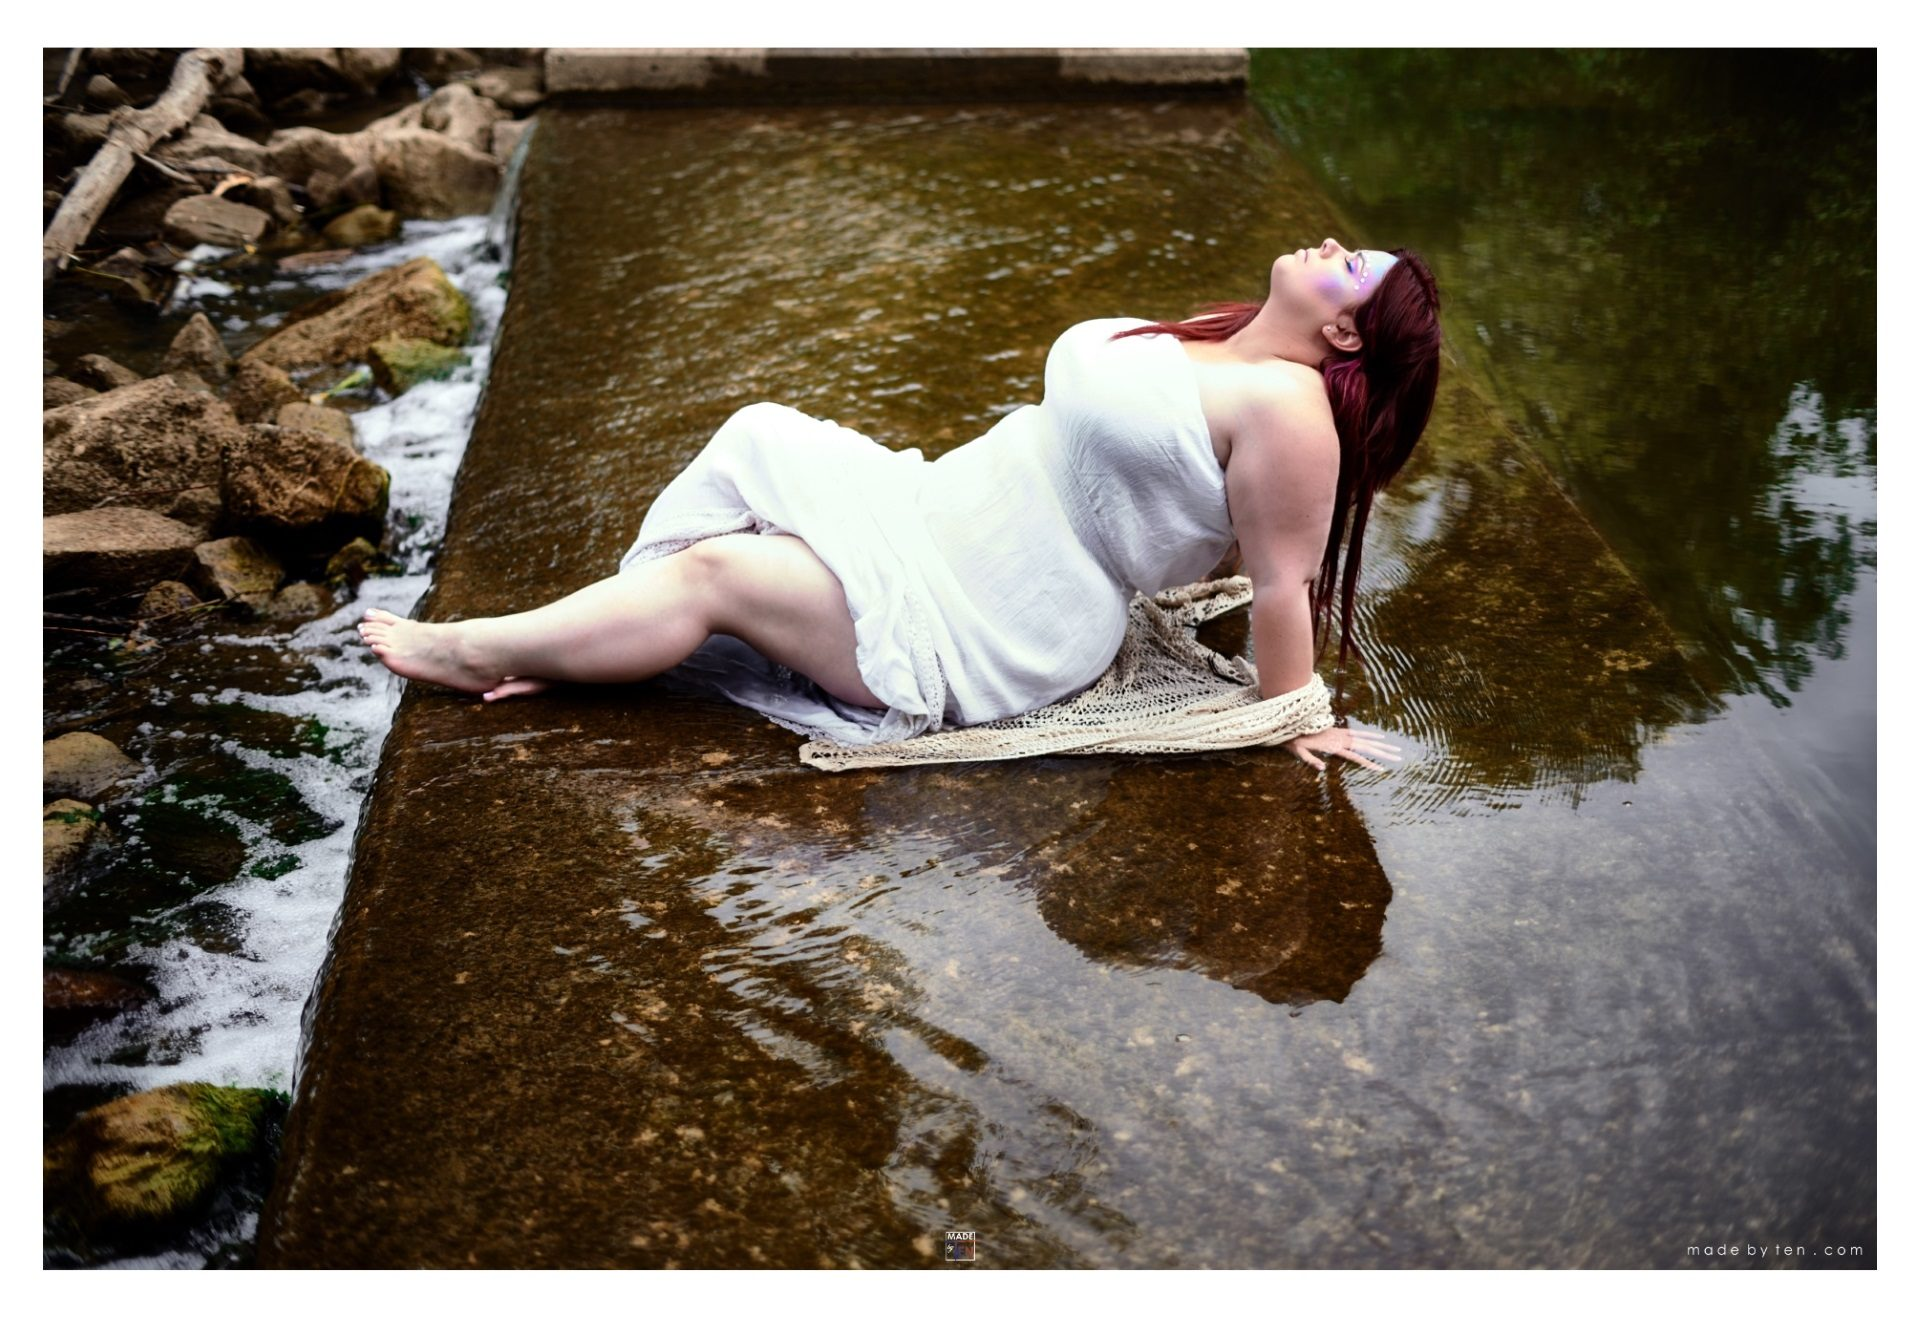 Woman Sitting in Pond Water - GTA Women Fantasy Photography